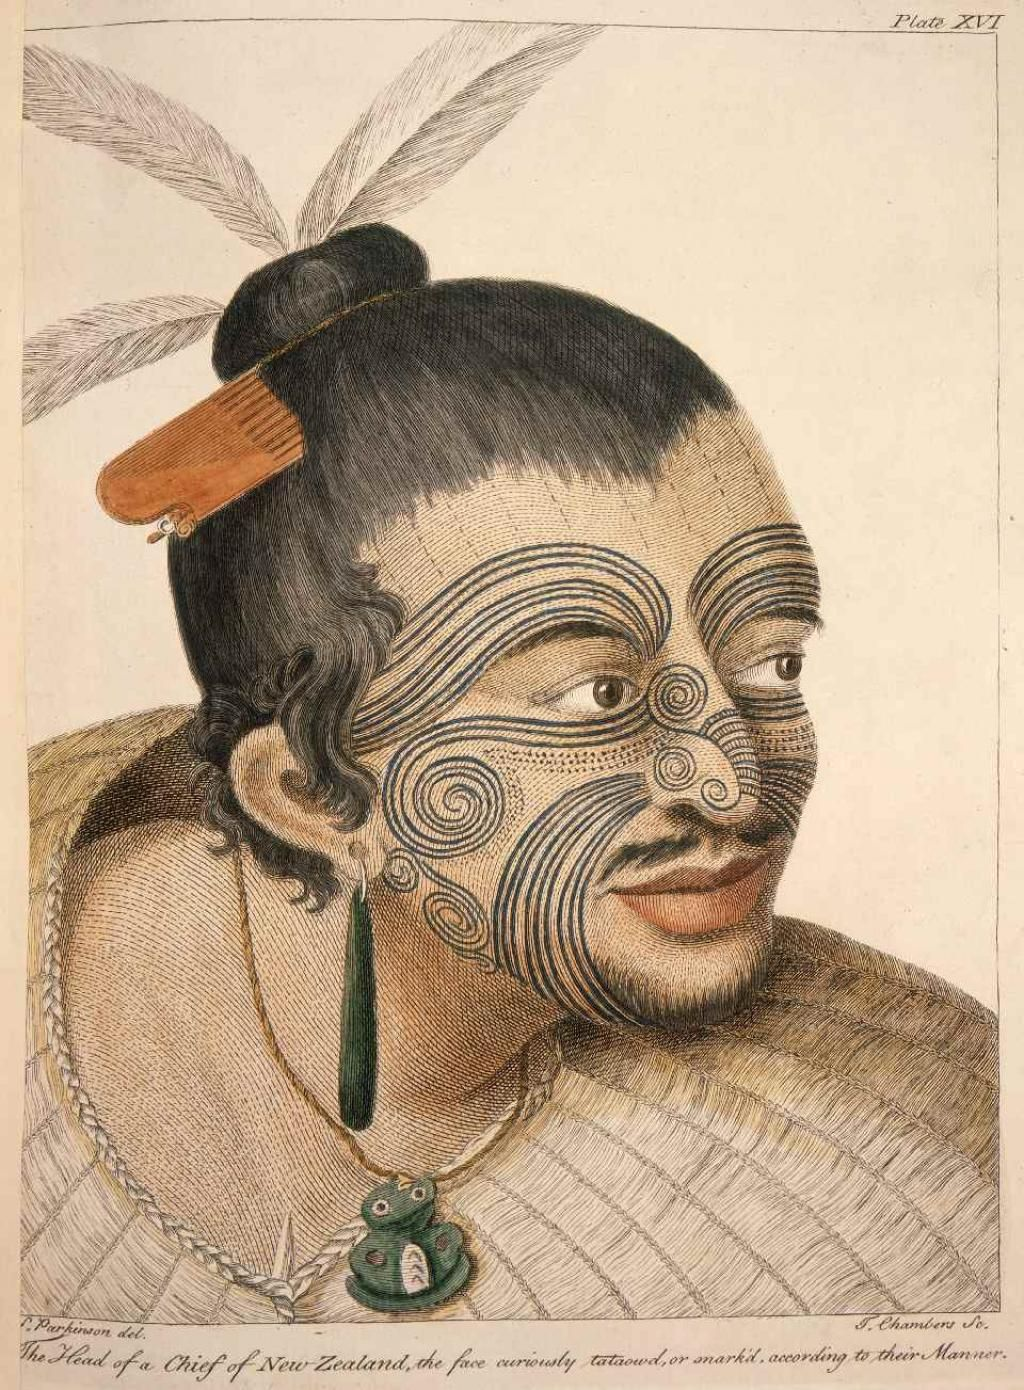 Māori Tattoos History Practice And Meanings: You Can Make Your Own Homemade Tattoo Ink From Natural